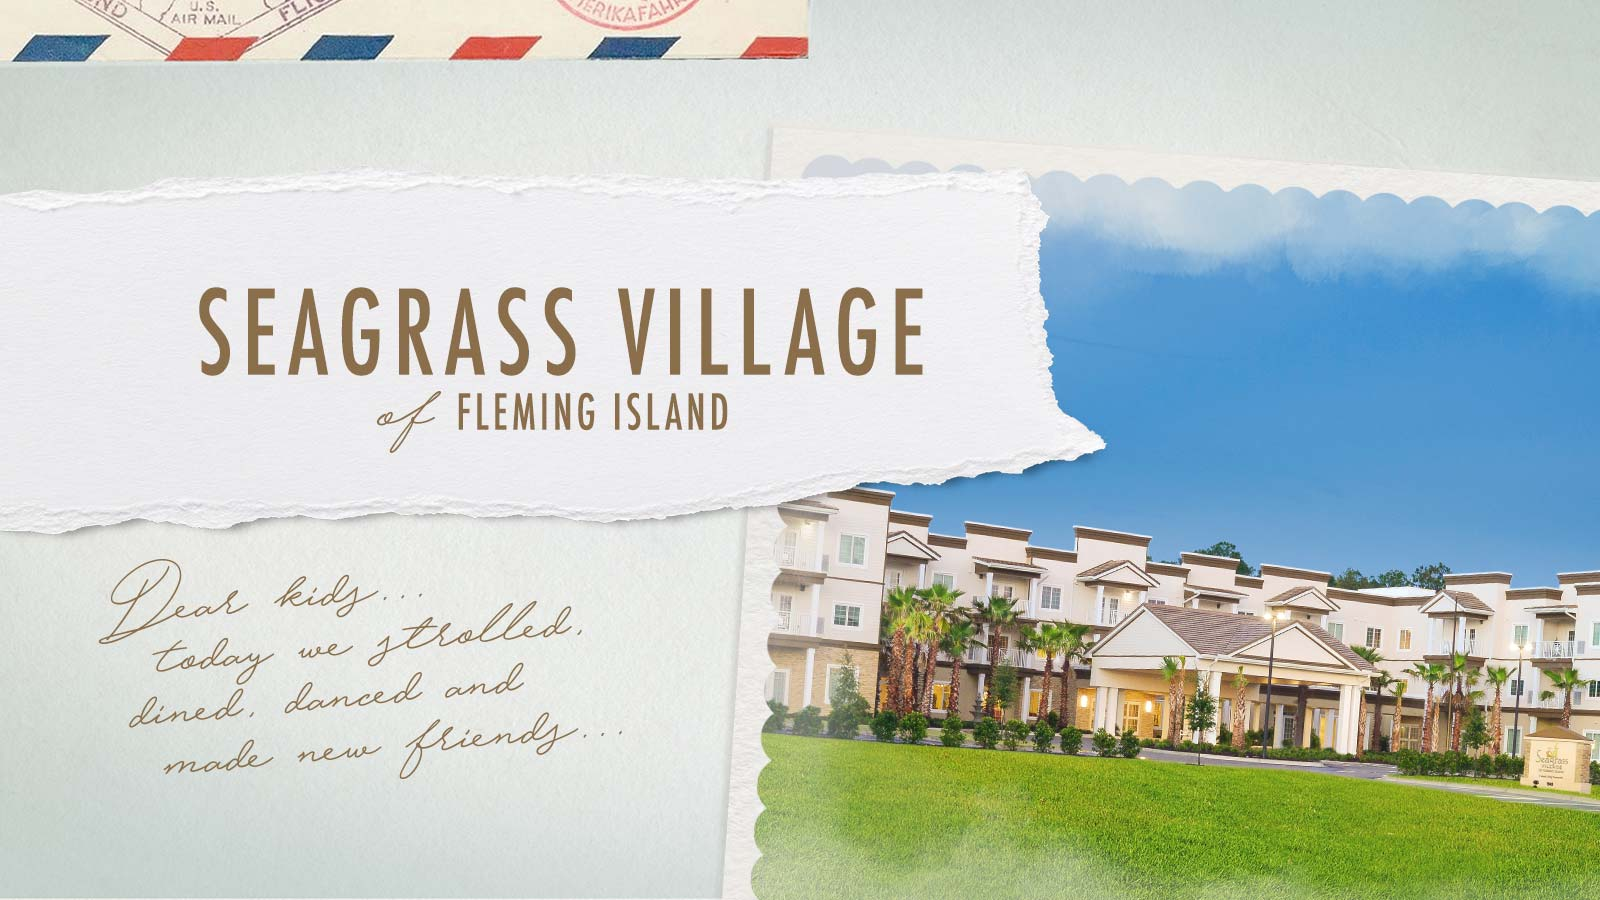 Seagrass Village of Fleming Island